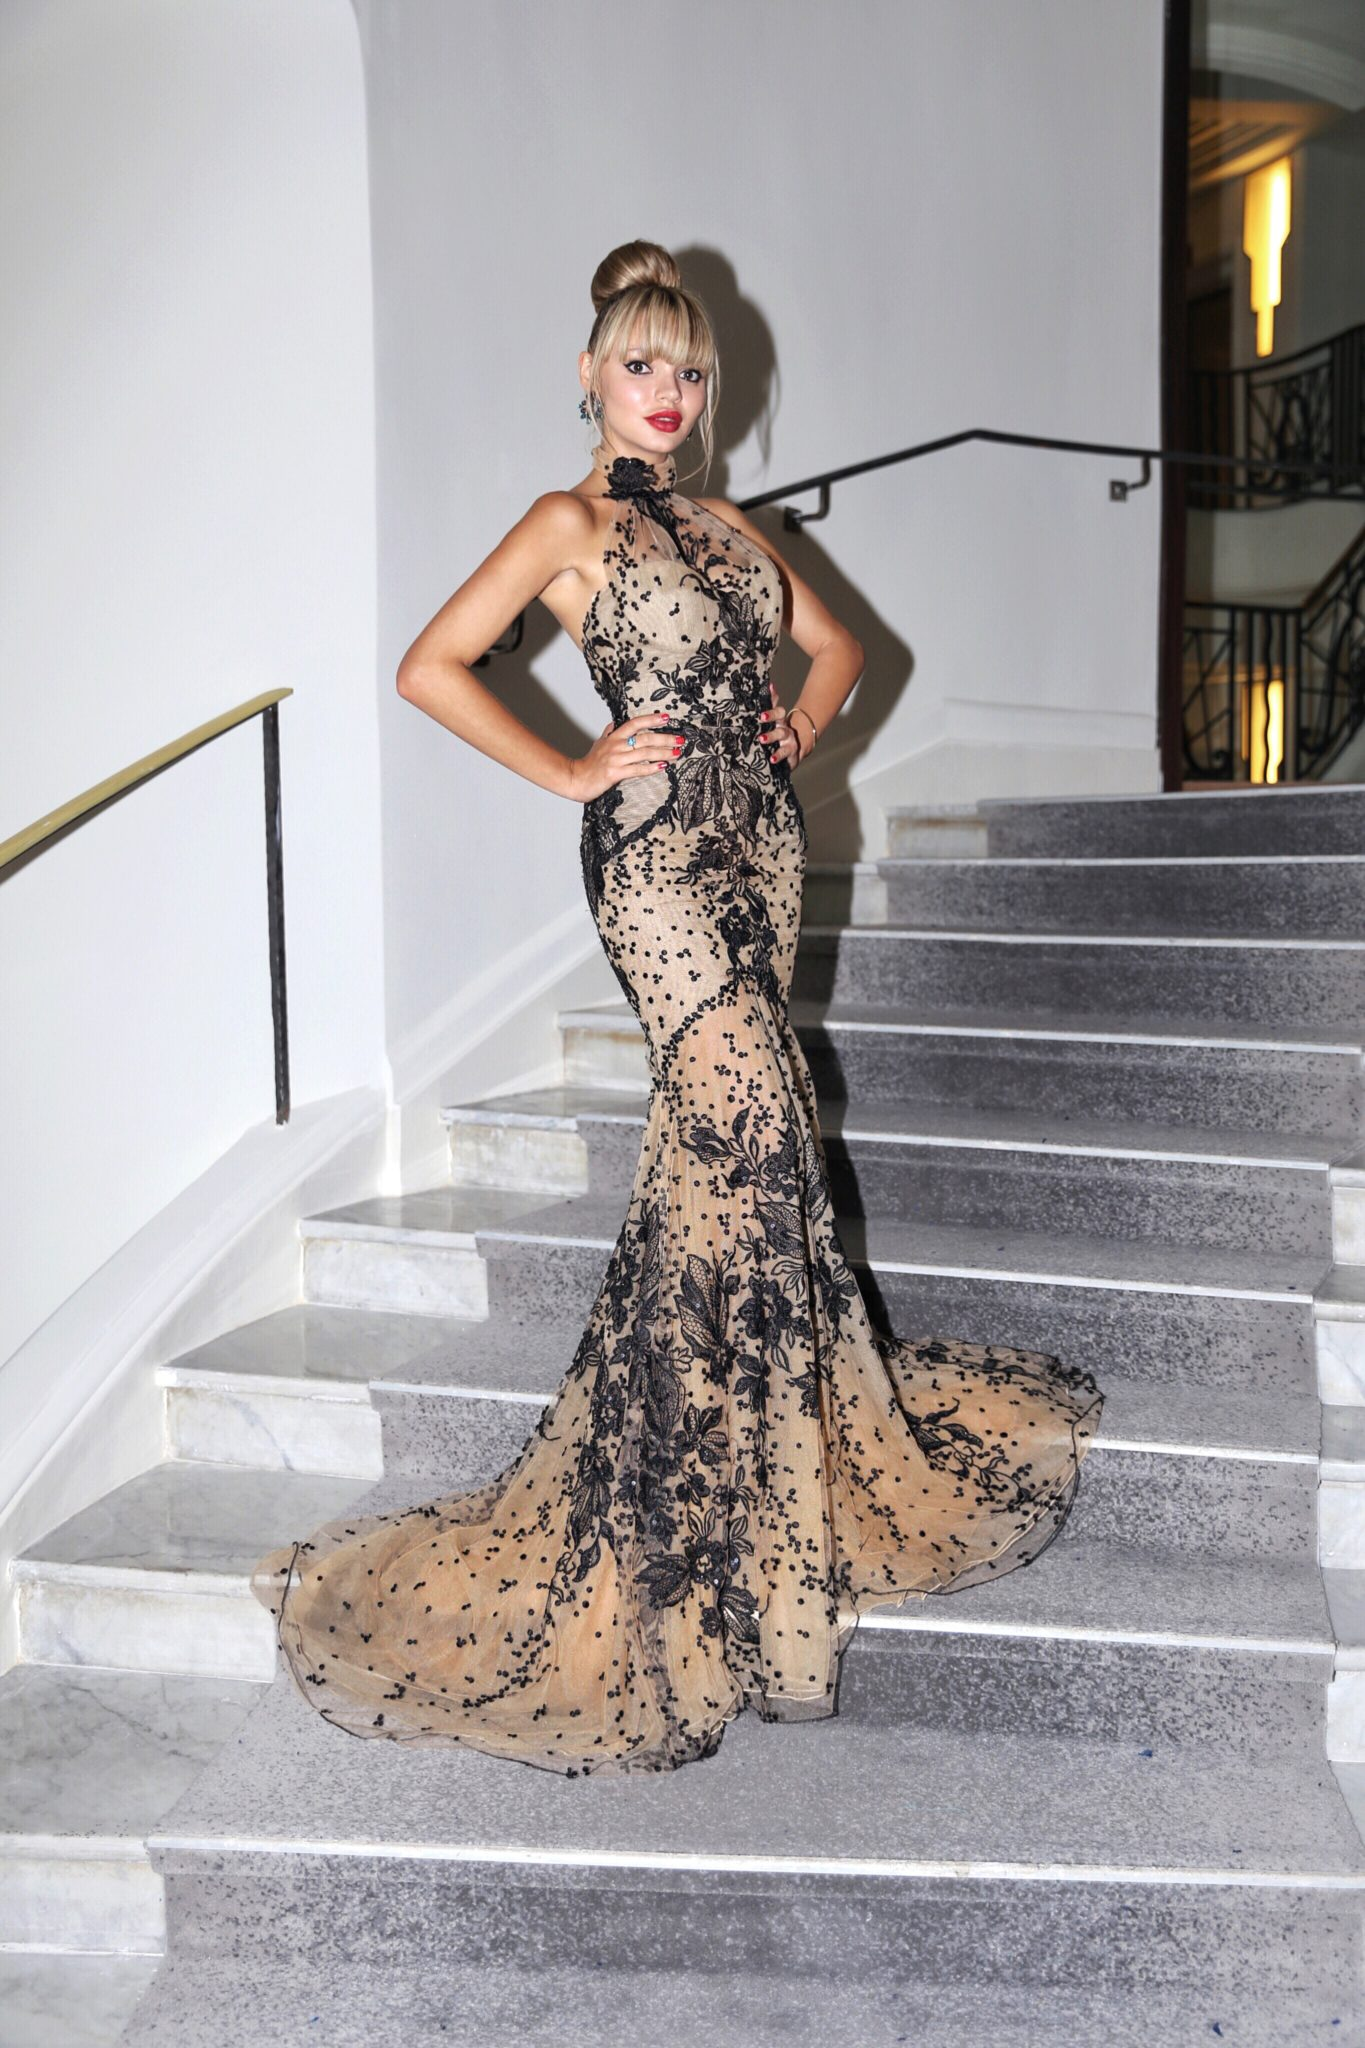 Pauline Baly wears Galia Lahav for the red carpet in Cannes